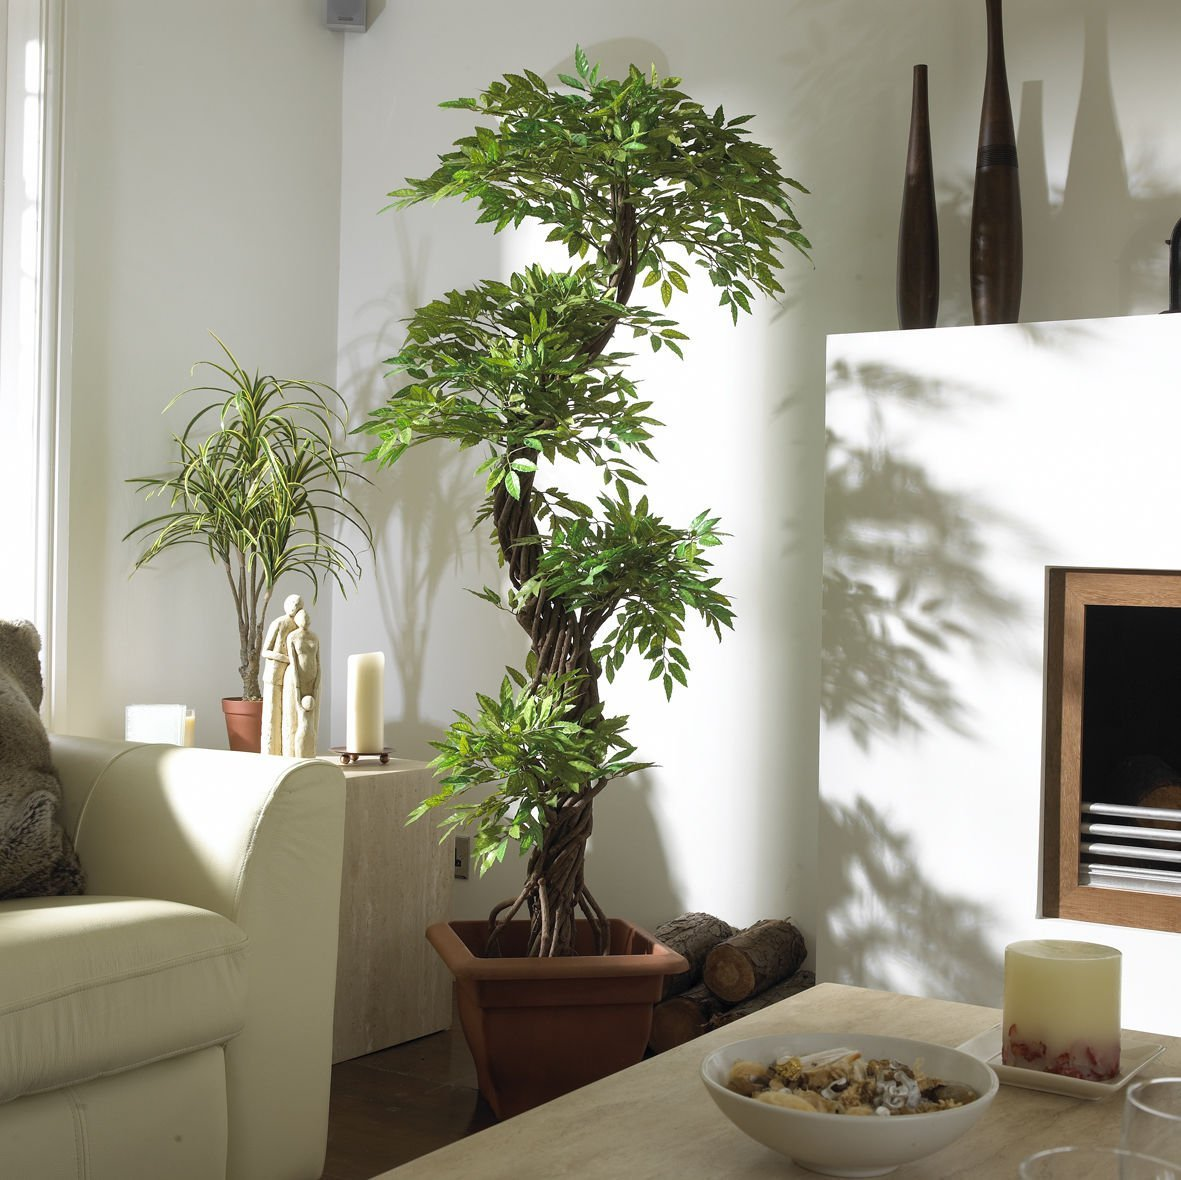 Plantas artificiais a saga do apartamento - Plantas artificiales ikea ...